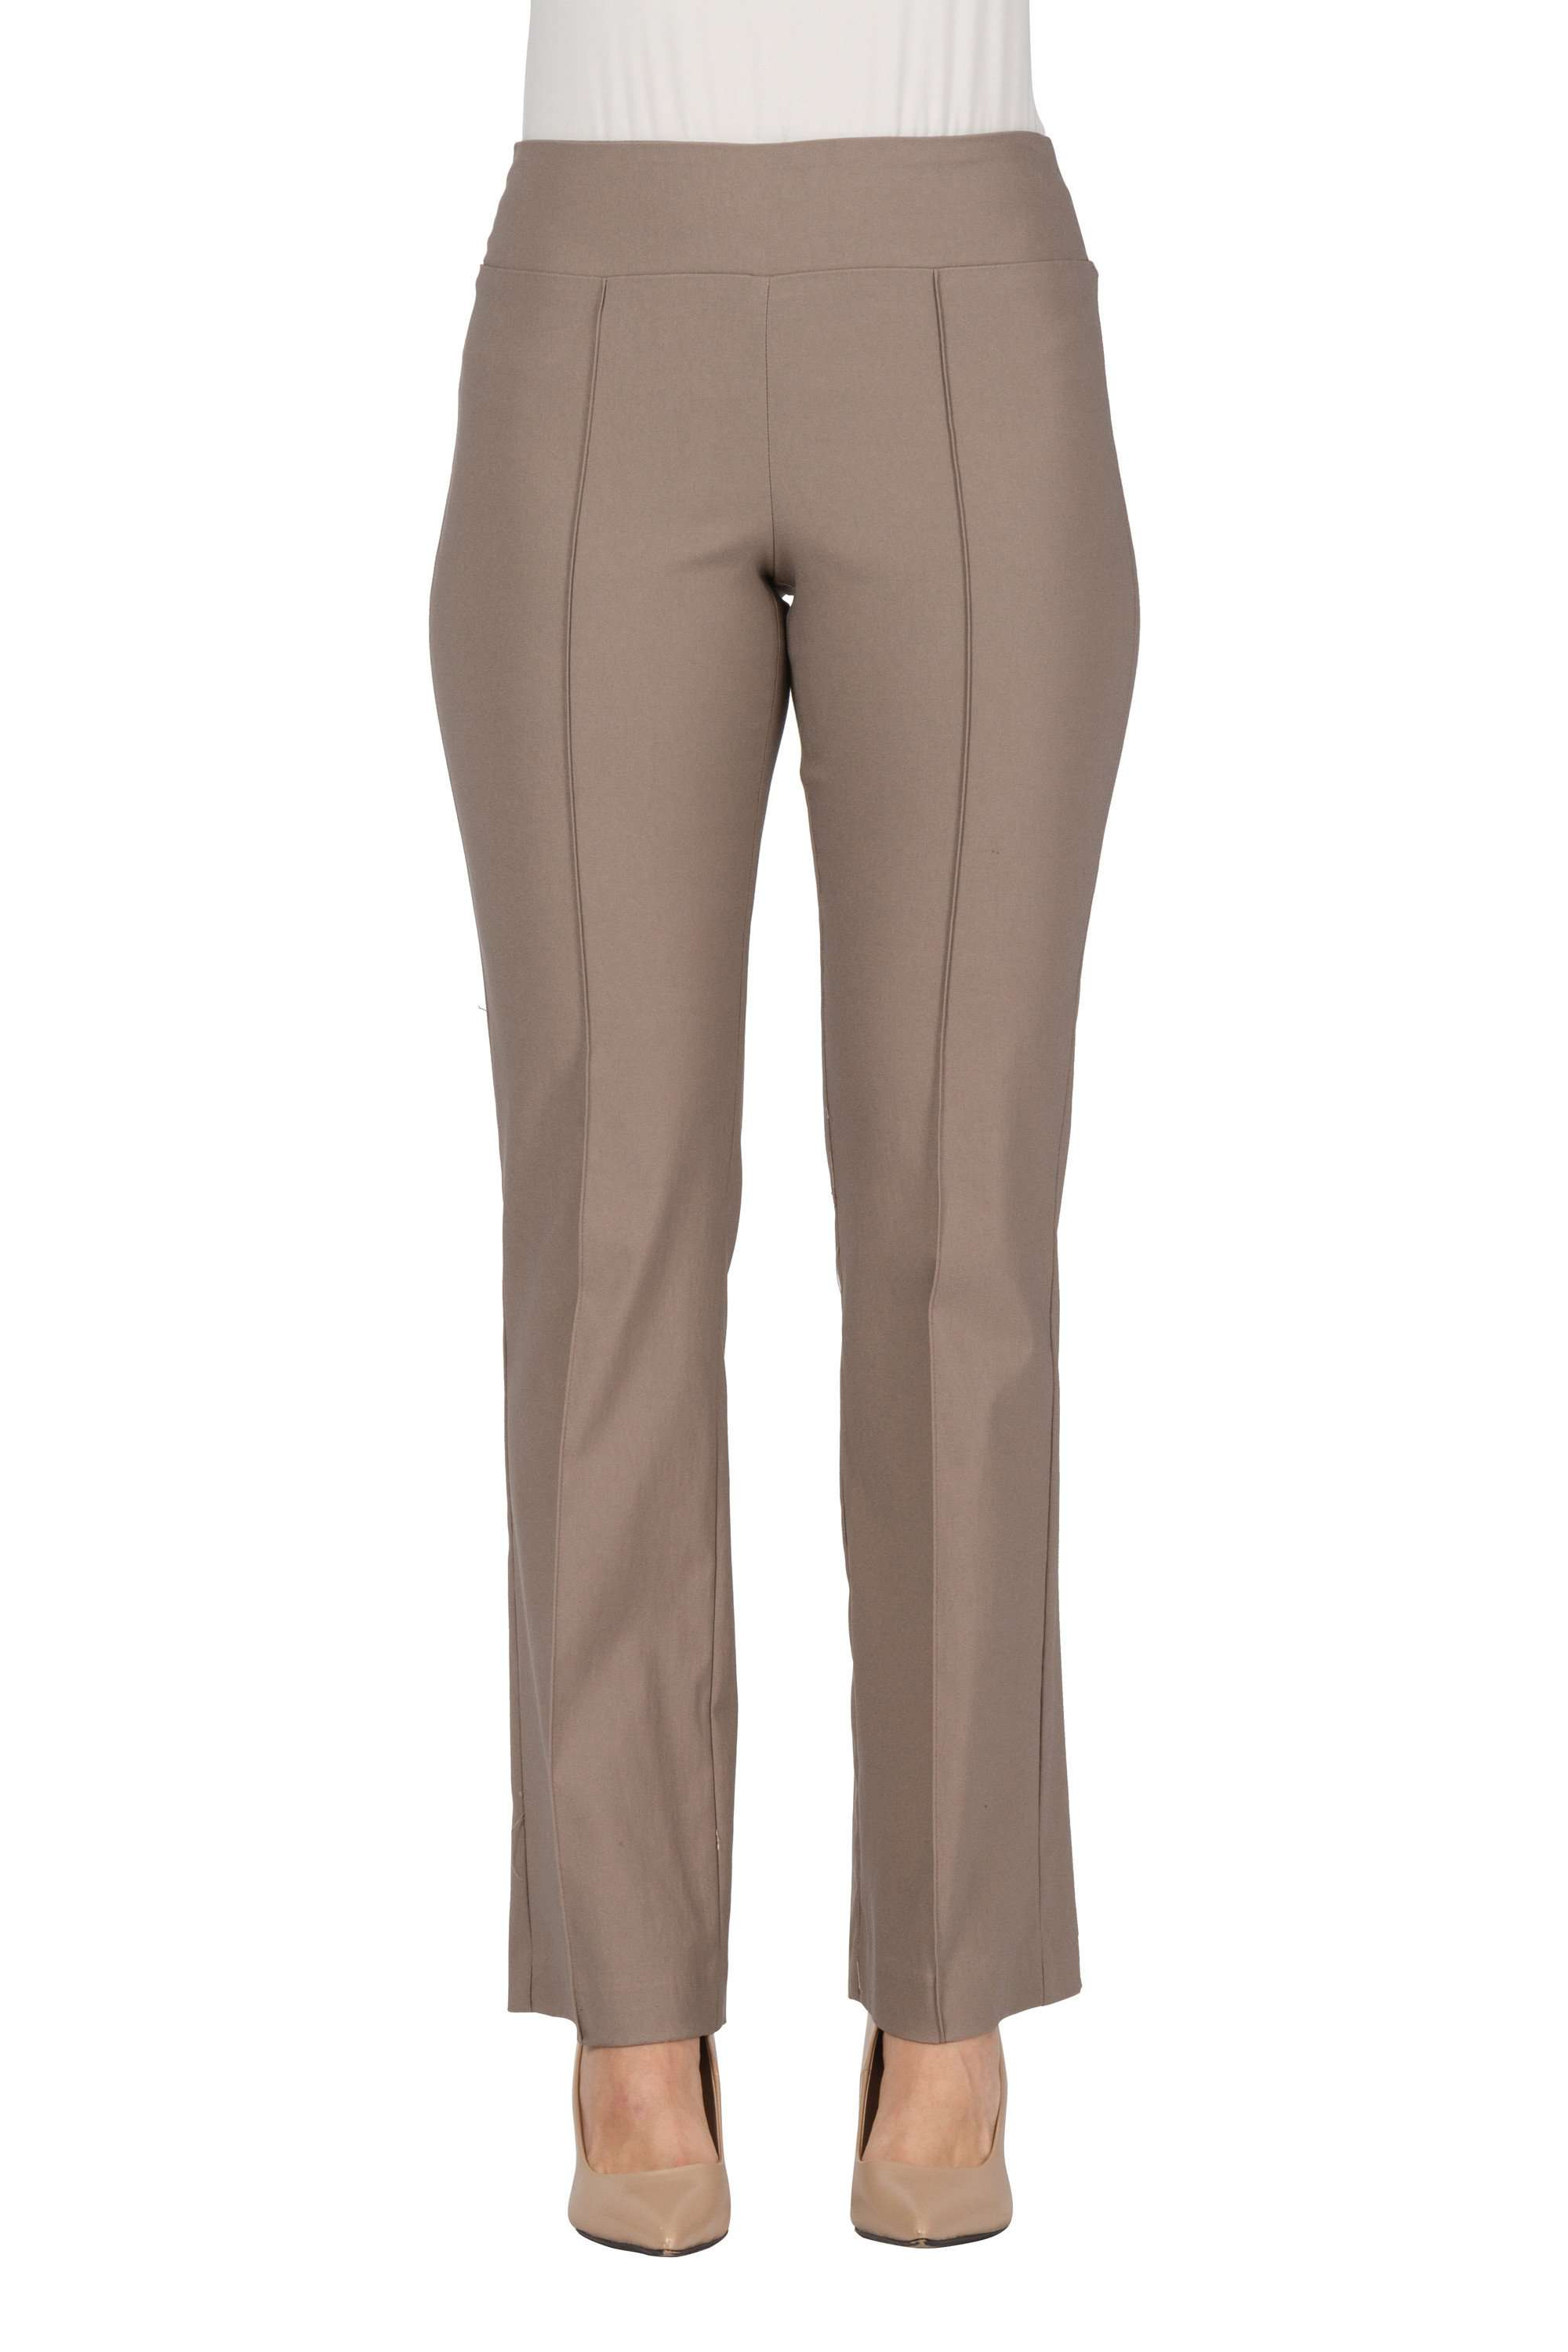 Taupe Miracle Pant - Quality and Comfort - So Flattering - Yvonne Marie